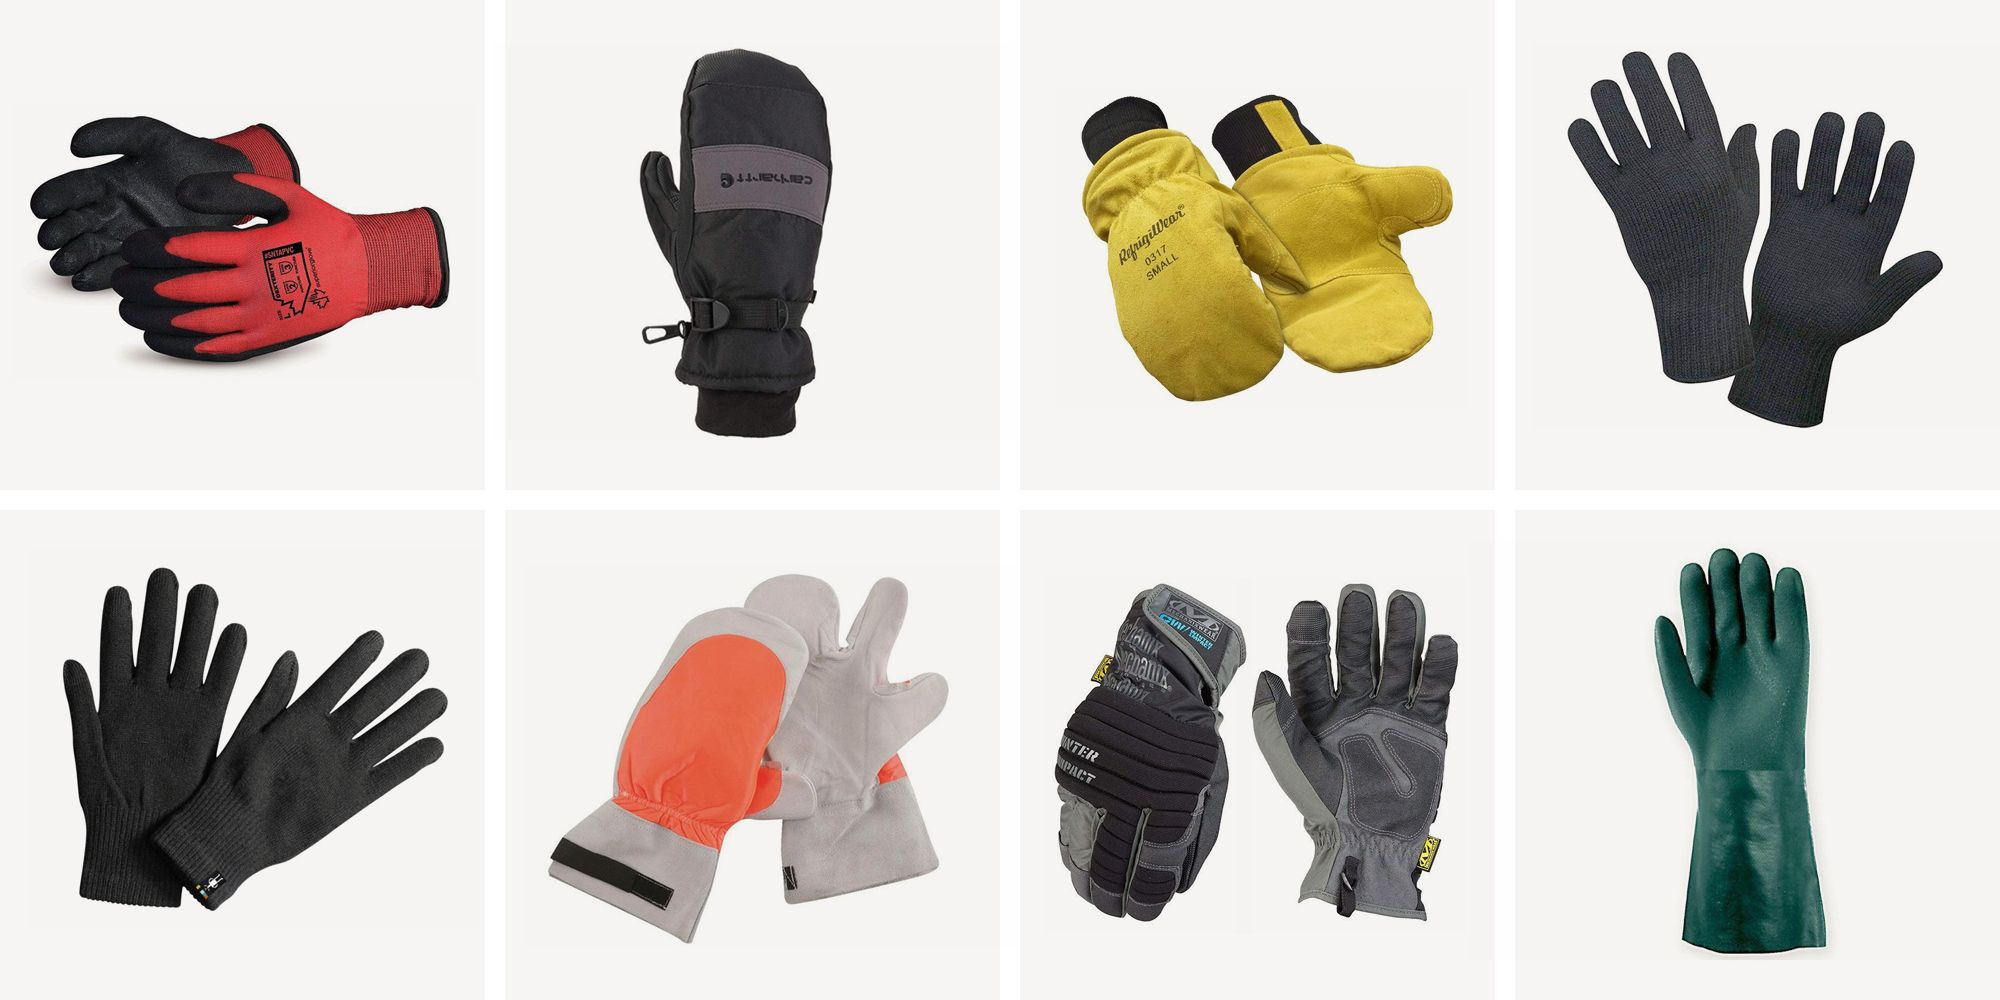 Heavy Welding Heat Insulation Protective Gear Safety Gloves Leather Work Gloves